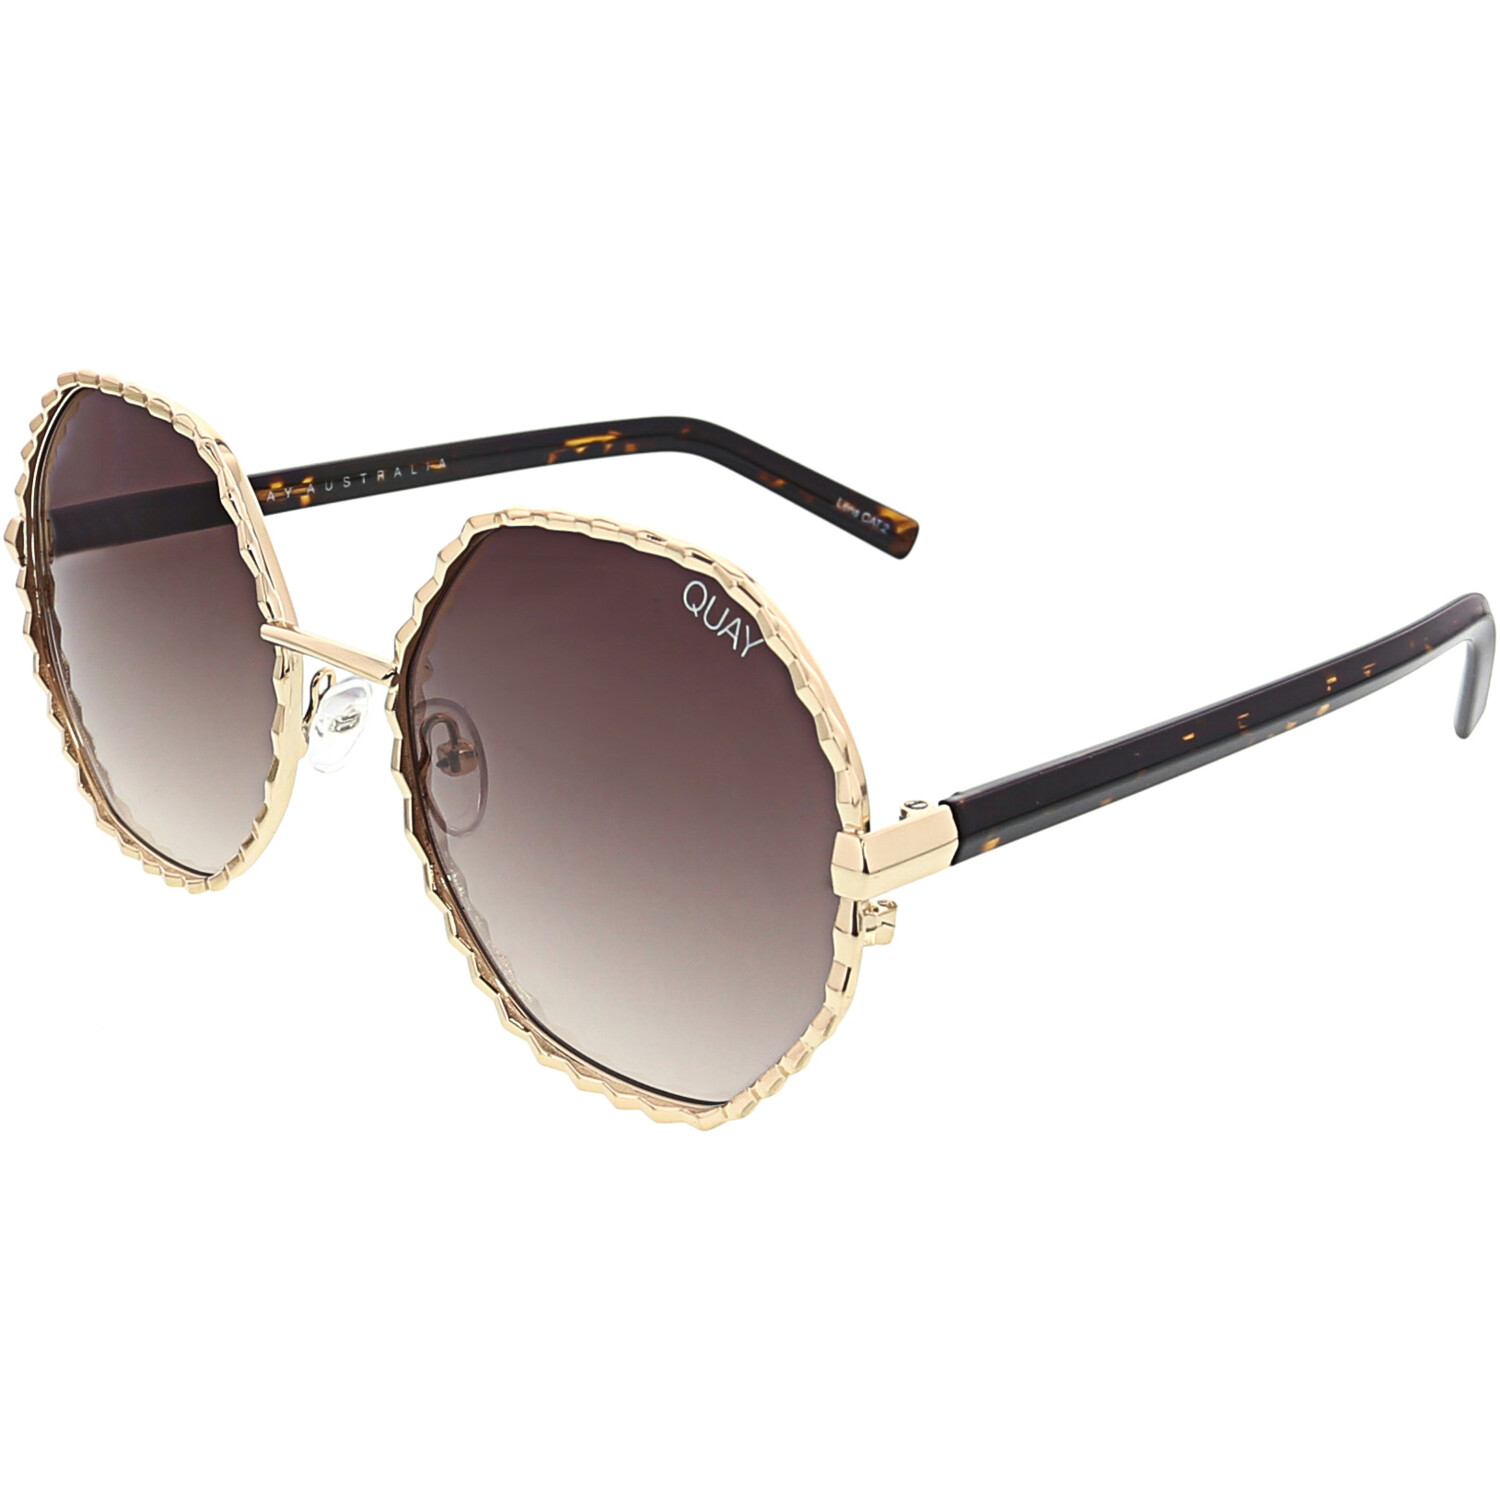 Quay Womens Gradient Breeze In QW-000378-GLD/BRN Gold Geometric Sunglasses